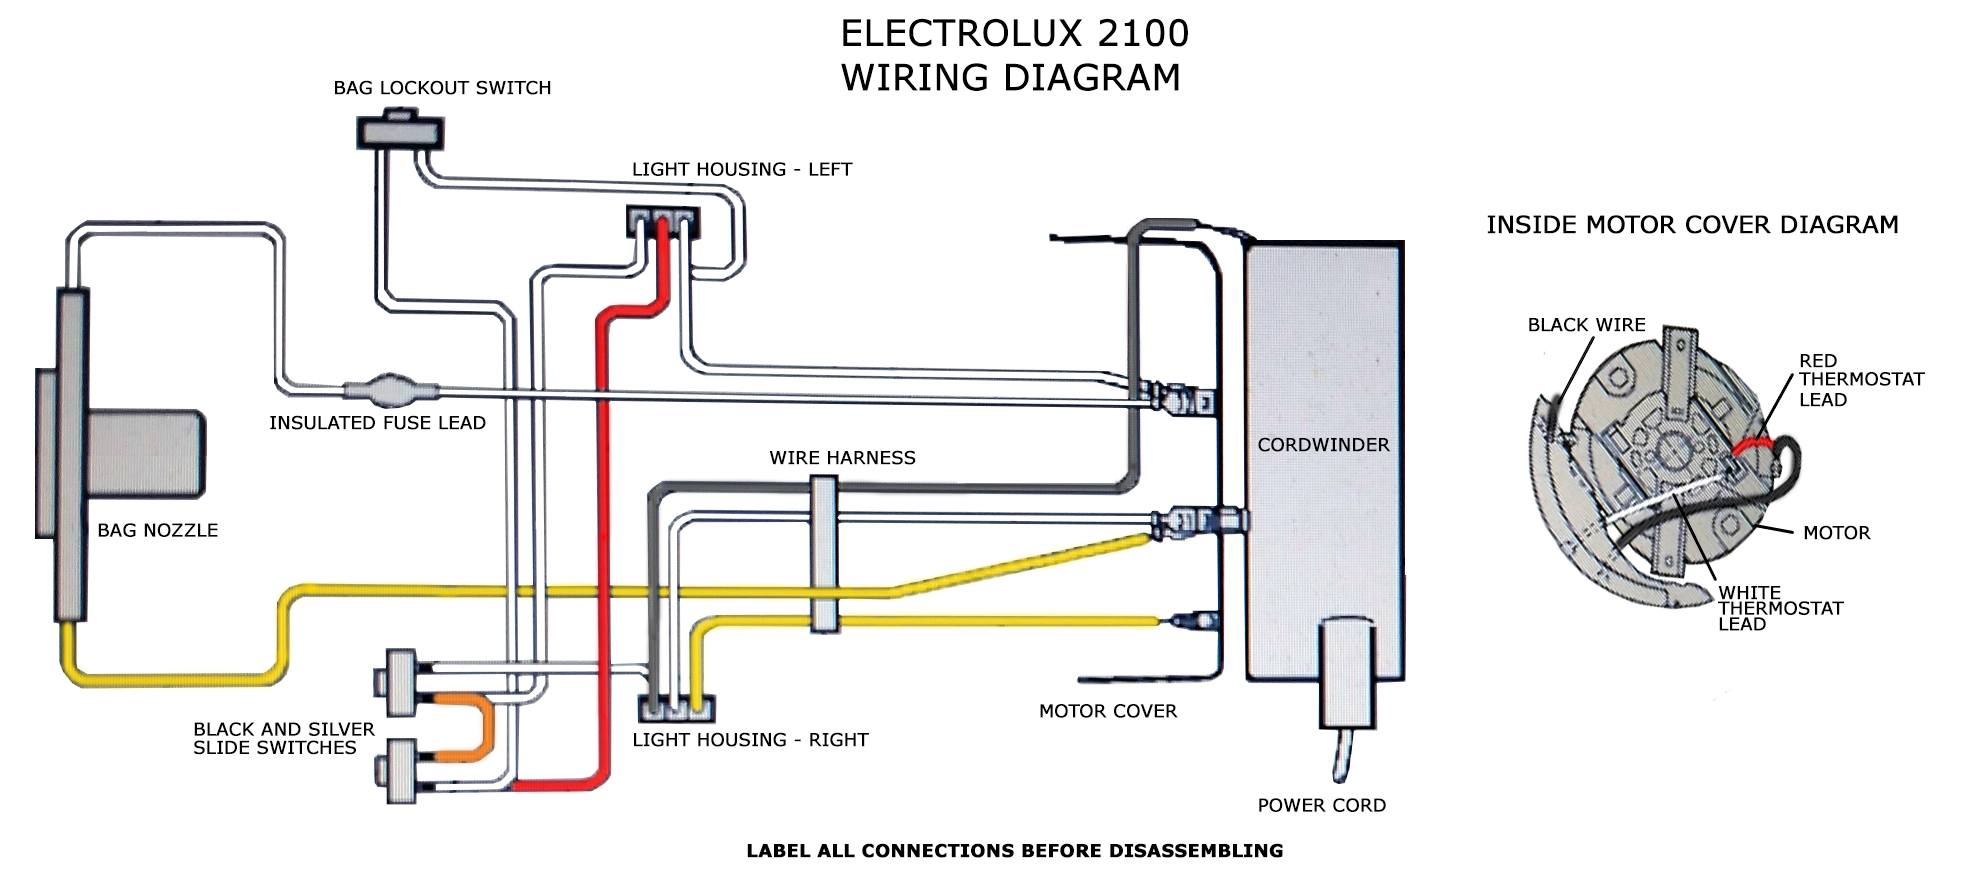 2100 wiring diagram miele vacuum wiring diagram osram wiring diagram \u2022 wiring diagram filter queen wiring diagram at love-stories.co